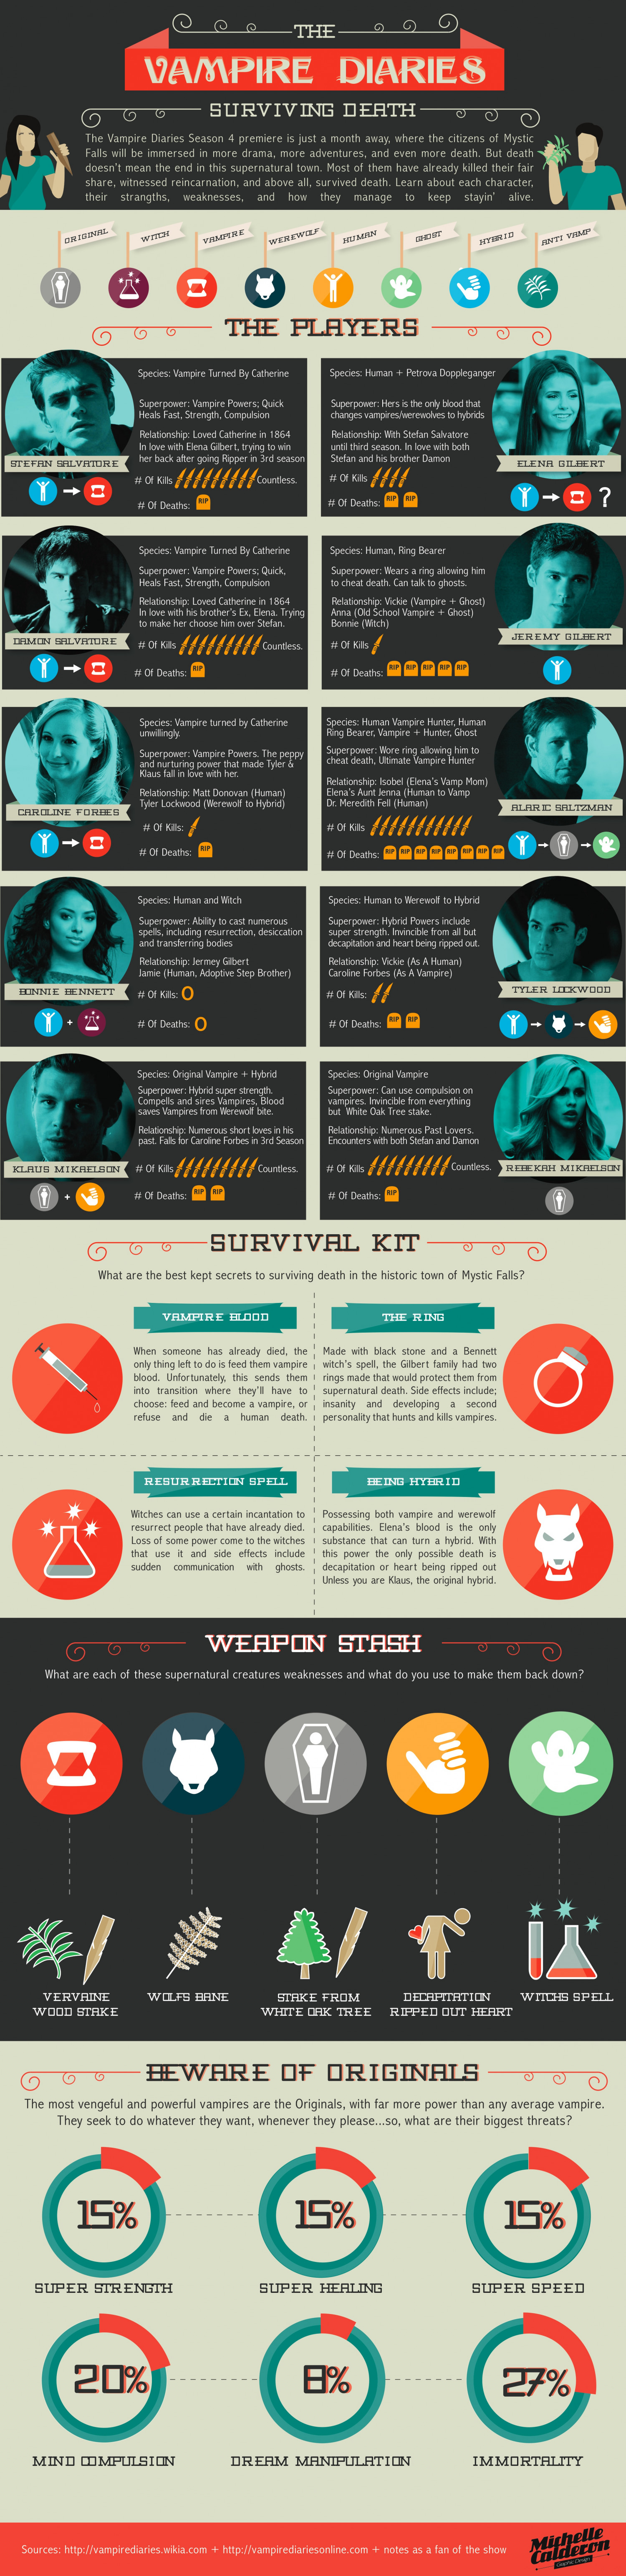 Vampire Diaries: Surviving Death Infographic